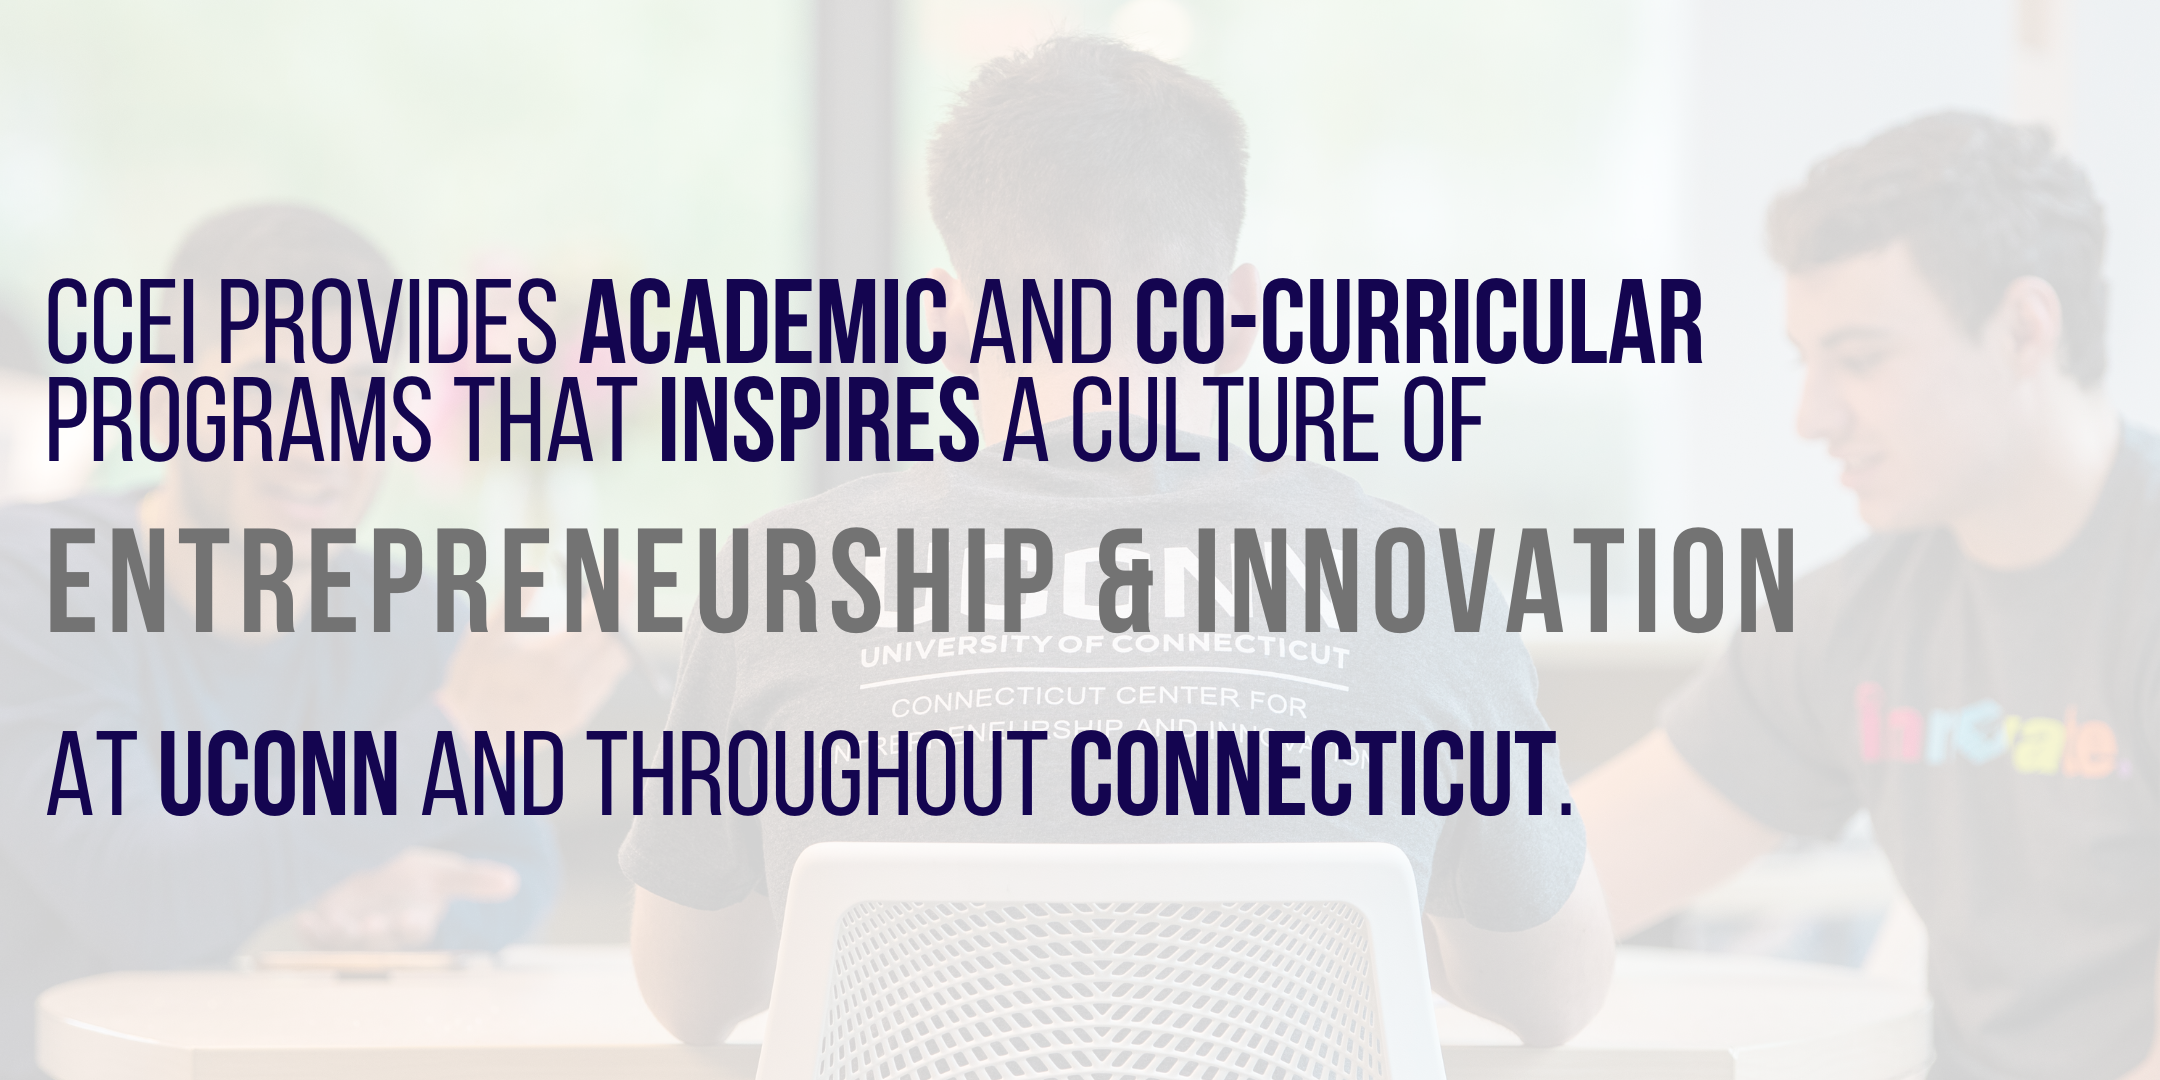 CCEI provides academic and co-curricular programs at UConn